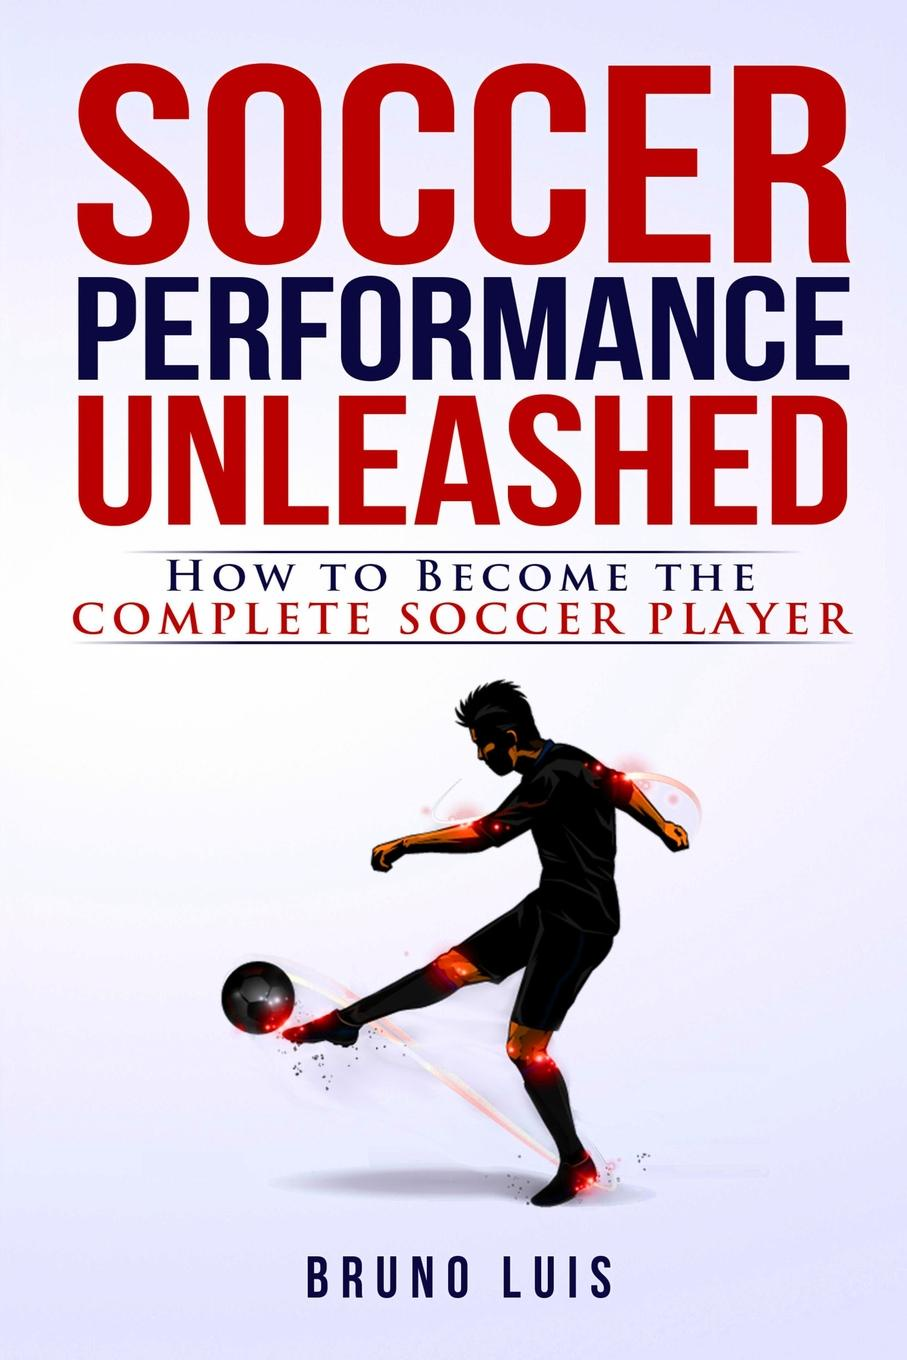 Bruno Luis Soccer Performance Unleashed - How to Become The Complete Soccer Player jeffrey magee your trajectory code how to change your decisions actions and directions to become part of the top 1